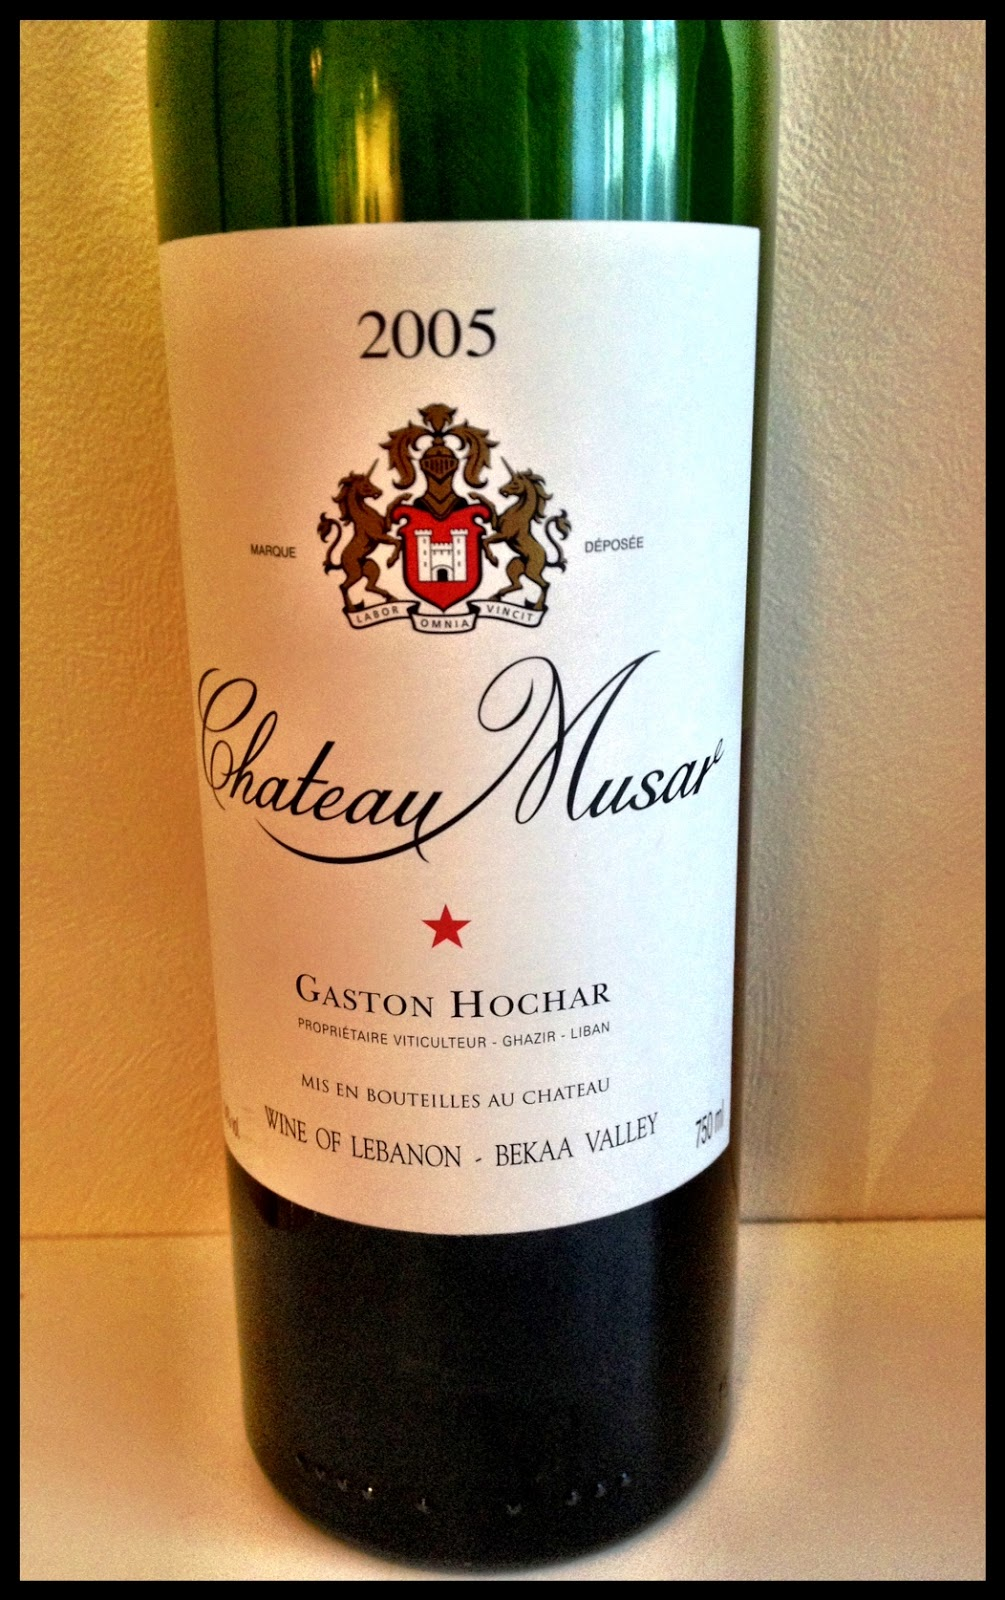 Tasting note on the 2005 Chateau Musar